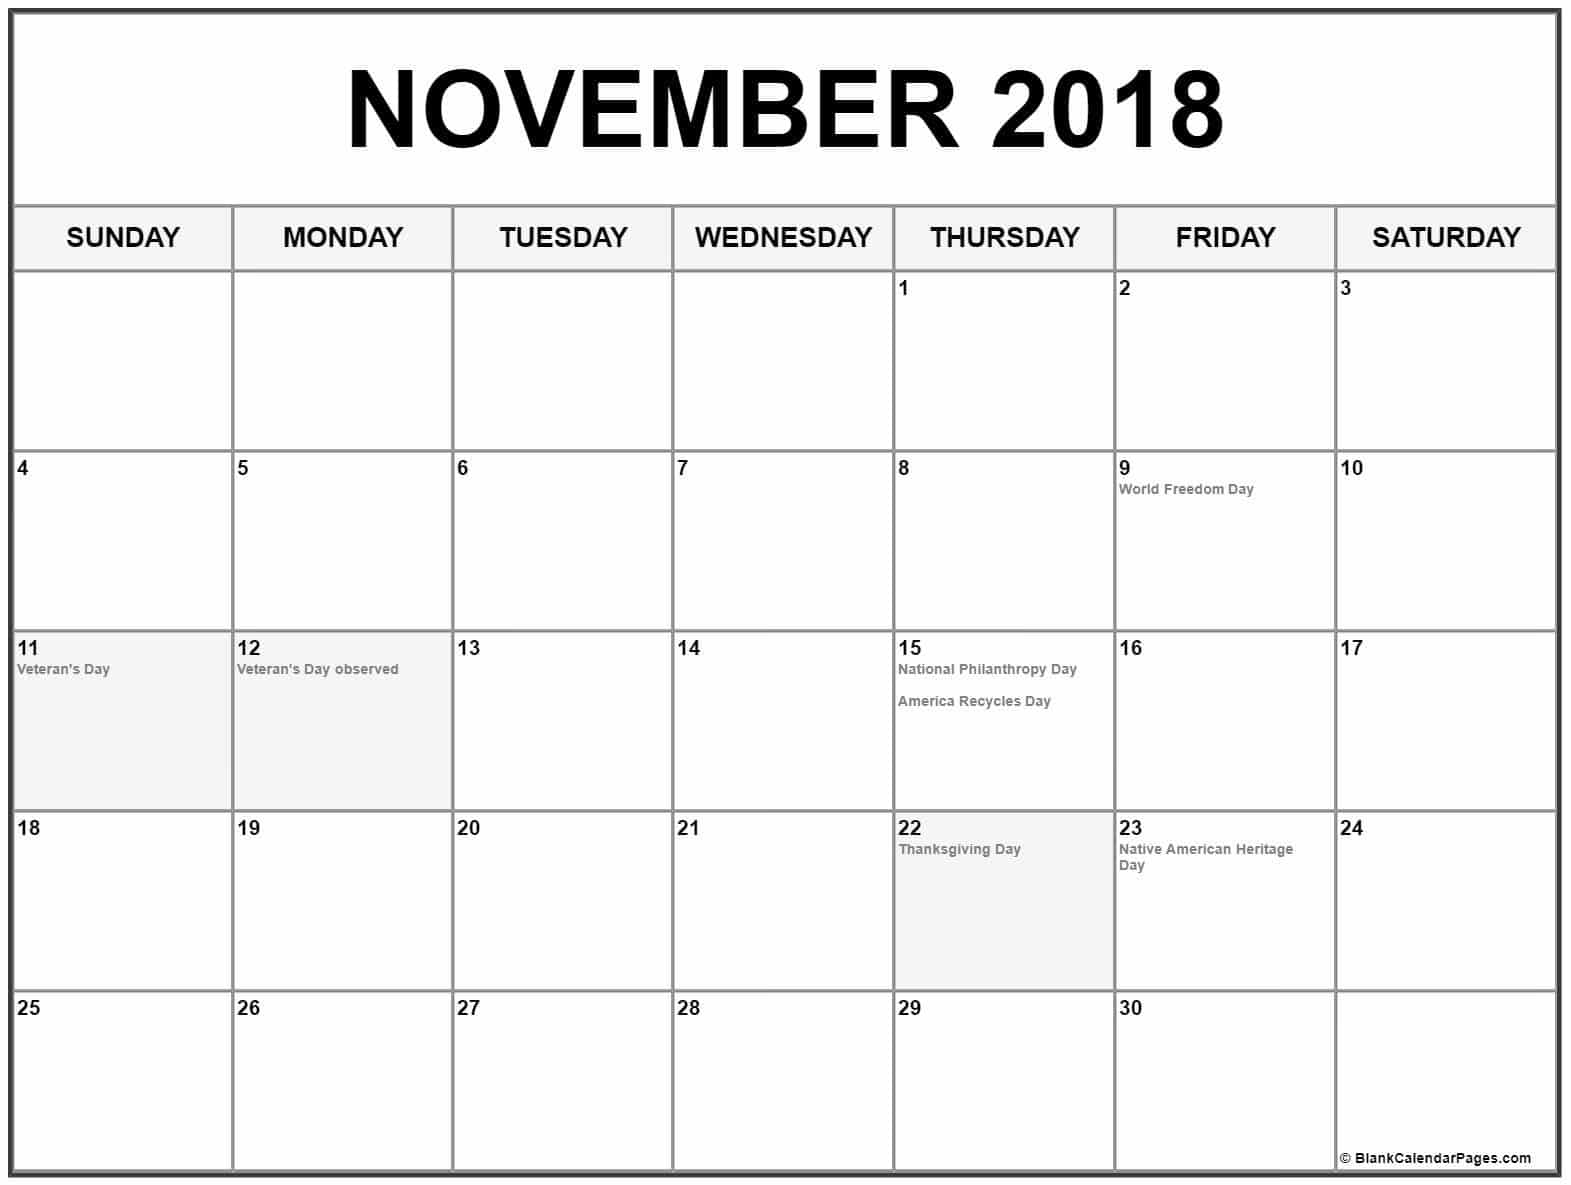 Mark a date of birthday for your special one that you want to celebrate this November 2018 so we can make it easy to download excel format calendar 2018